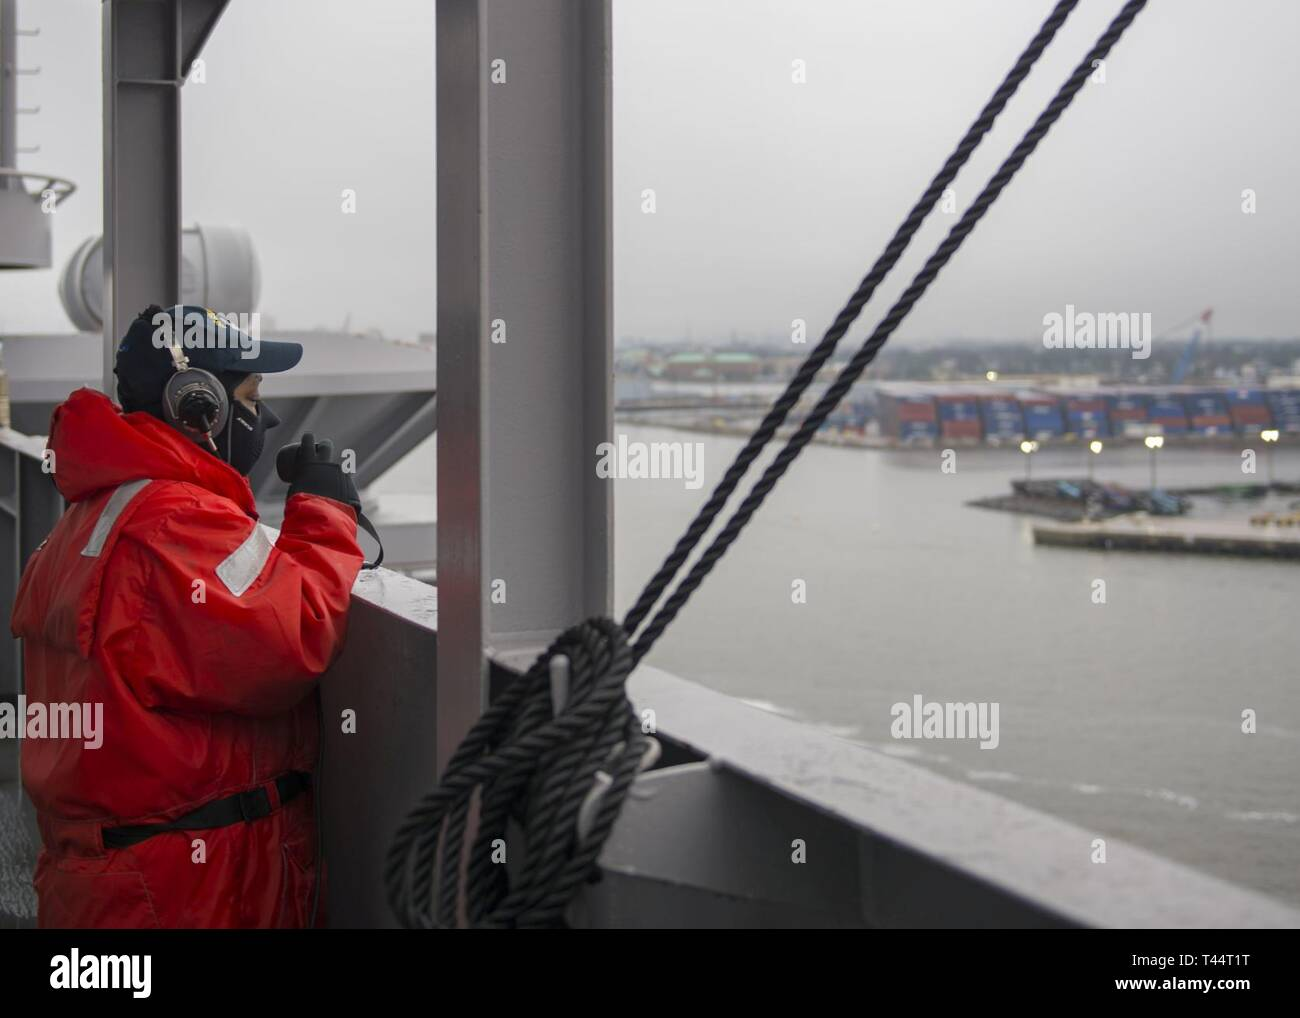 NORFOLK, Va. (Feb. 21, 2019) Operations Specialist 2nd Class Corin Colvin, from Burganfield, New Jersey, stands watch aboard the aircraft carrier USS George H.W. Bush (CVN 77). GHWB is at Norfolk Naval Shipyard undergoing a docking planned incremental availability (DPIA). - Stock Image